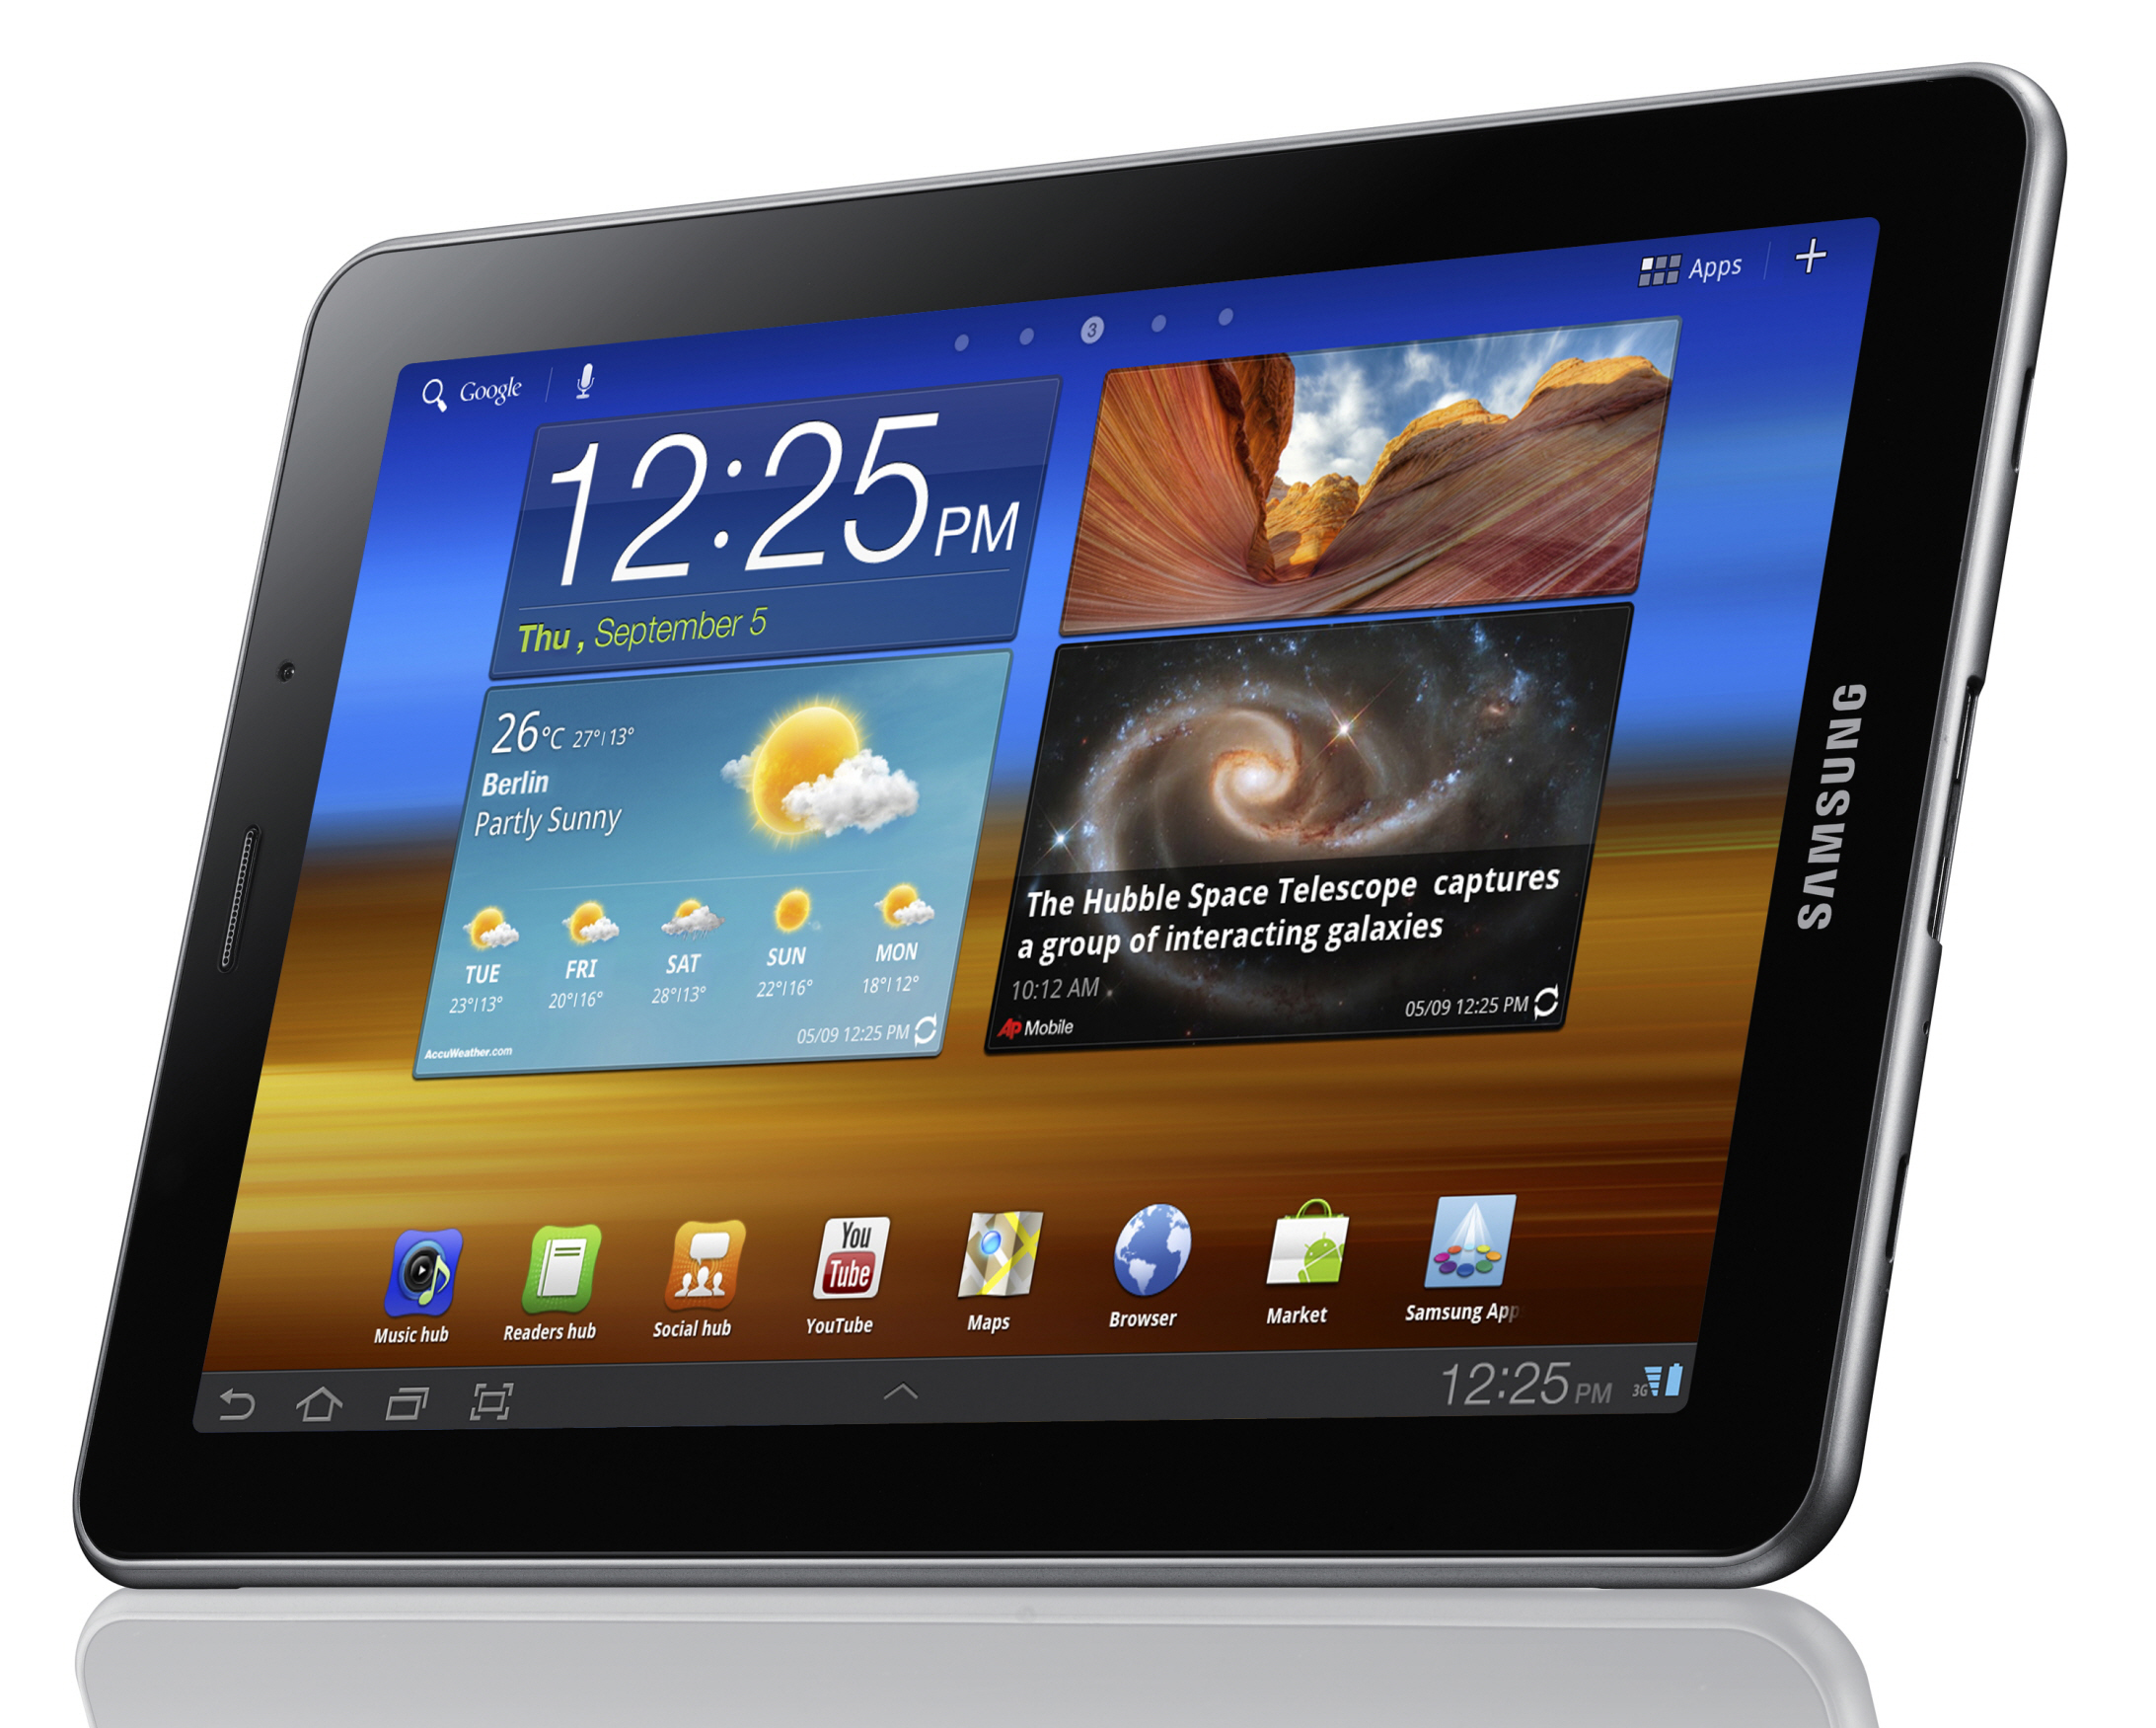 Samsung pulls Galaxy Tab 7.7 from IFA show